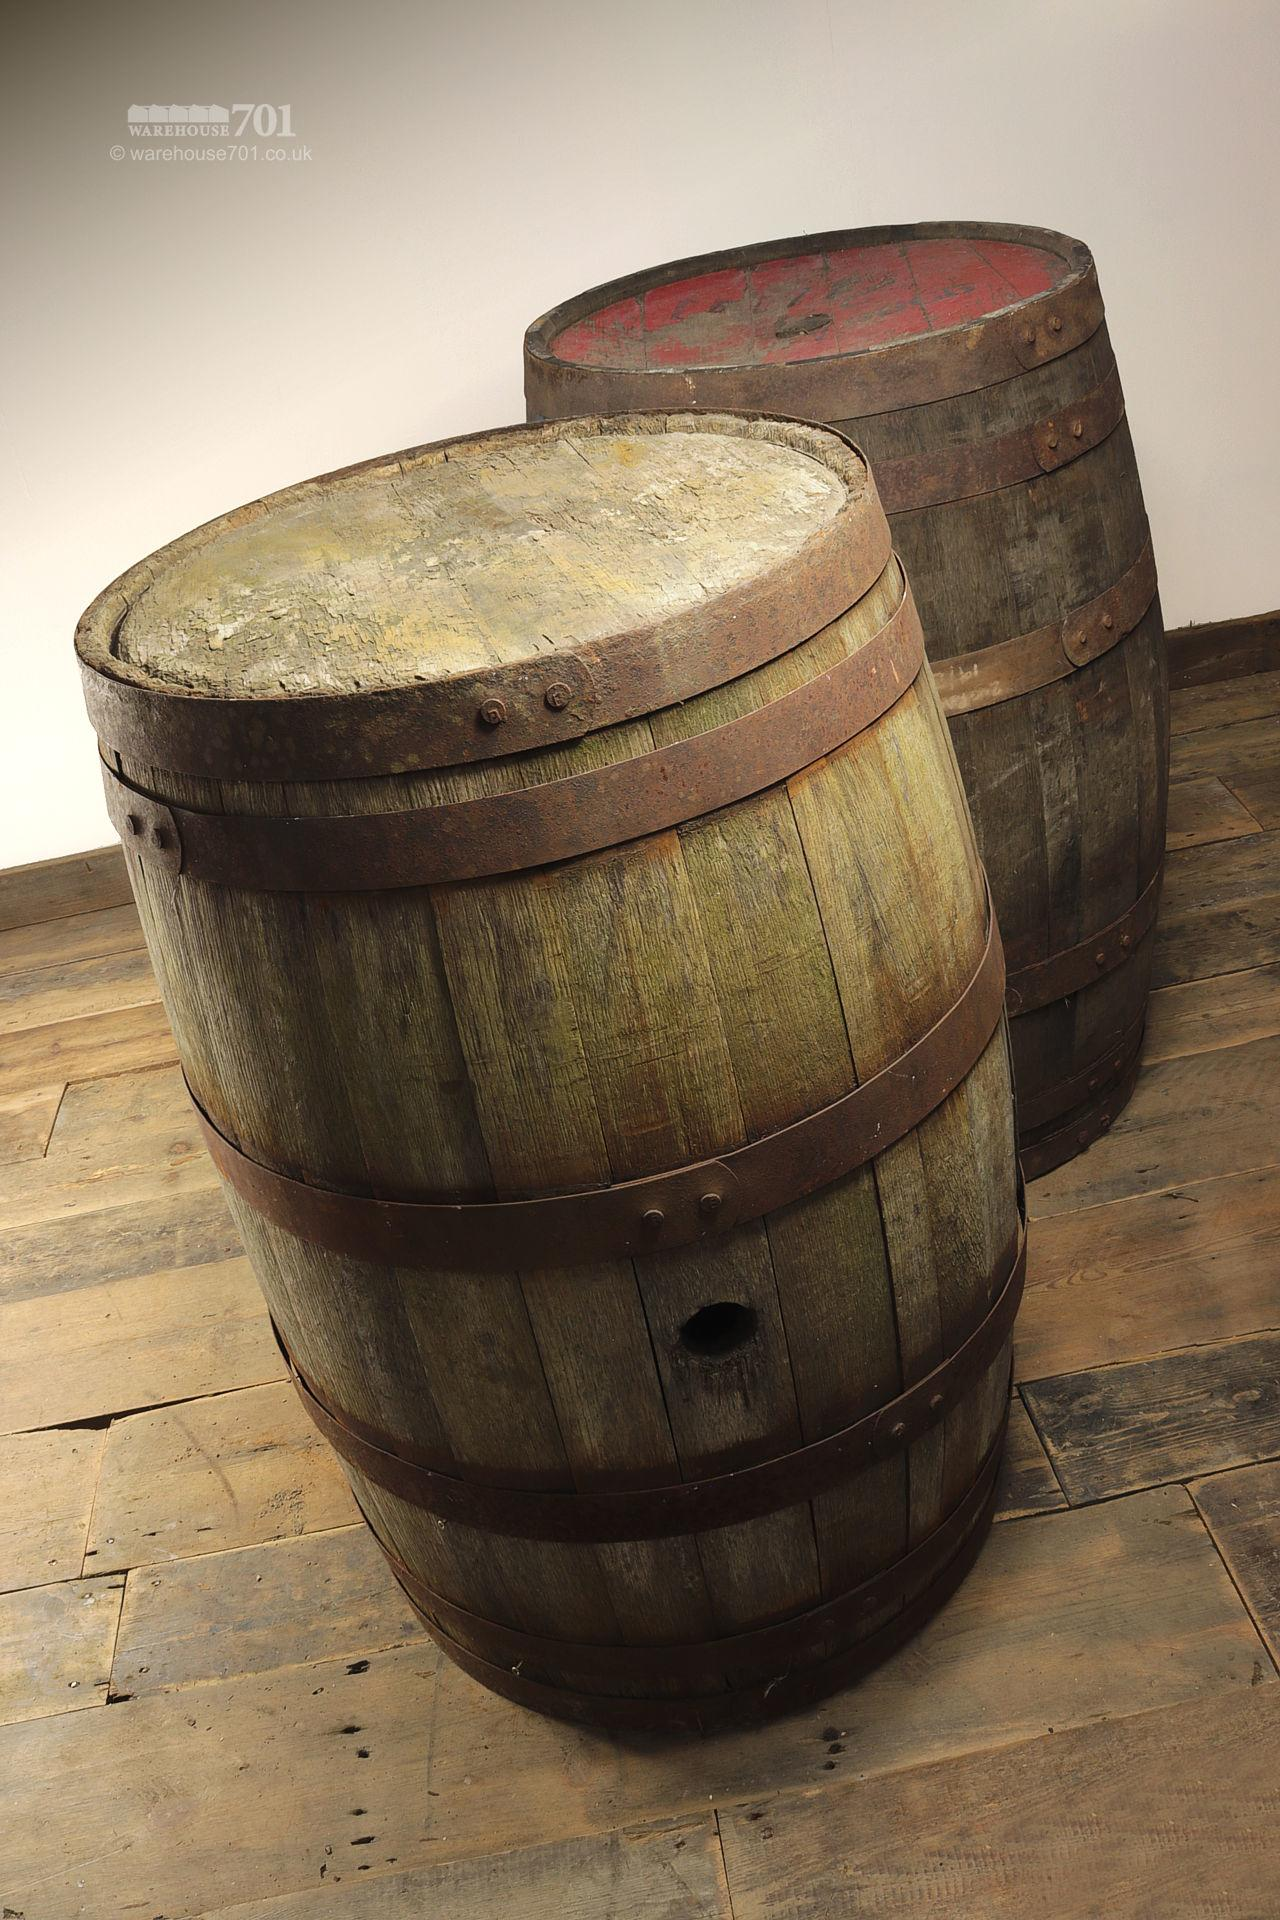 Reclaimed Solid Oak Authentic Whisky Barrels, Casks or Kegs #5